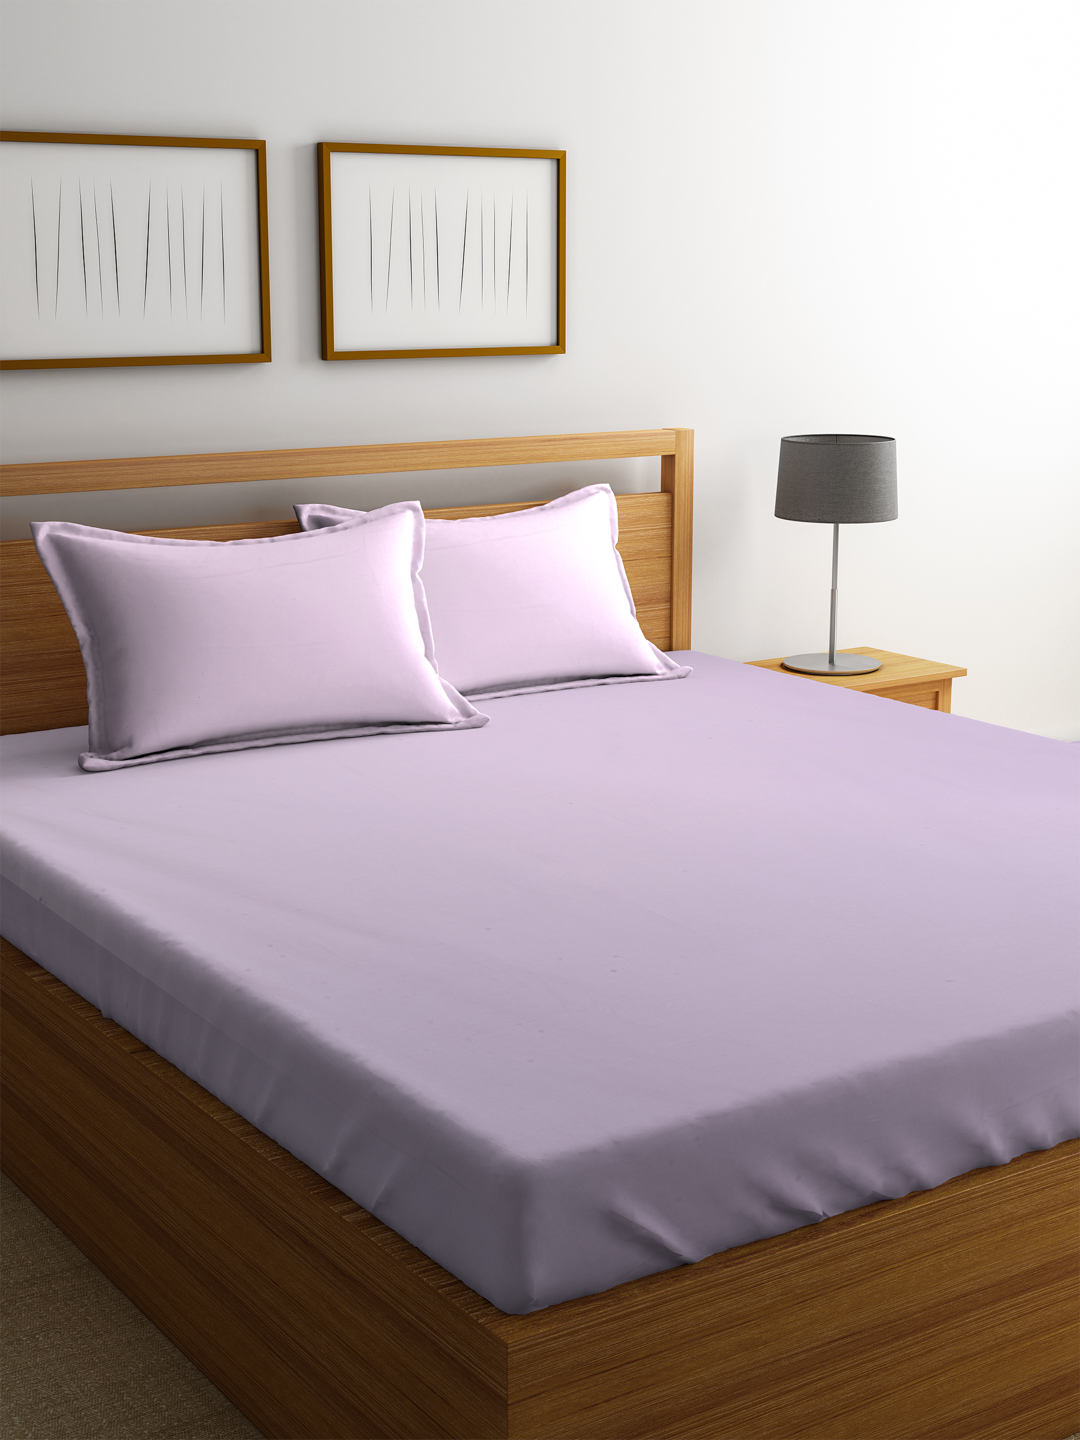 Portico Percale Cotton Double Bed Sheets in Pink Colour by Portico